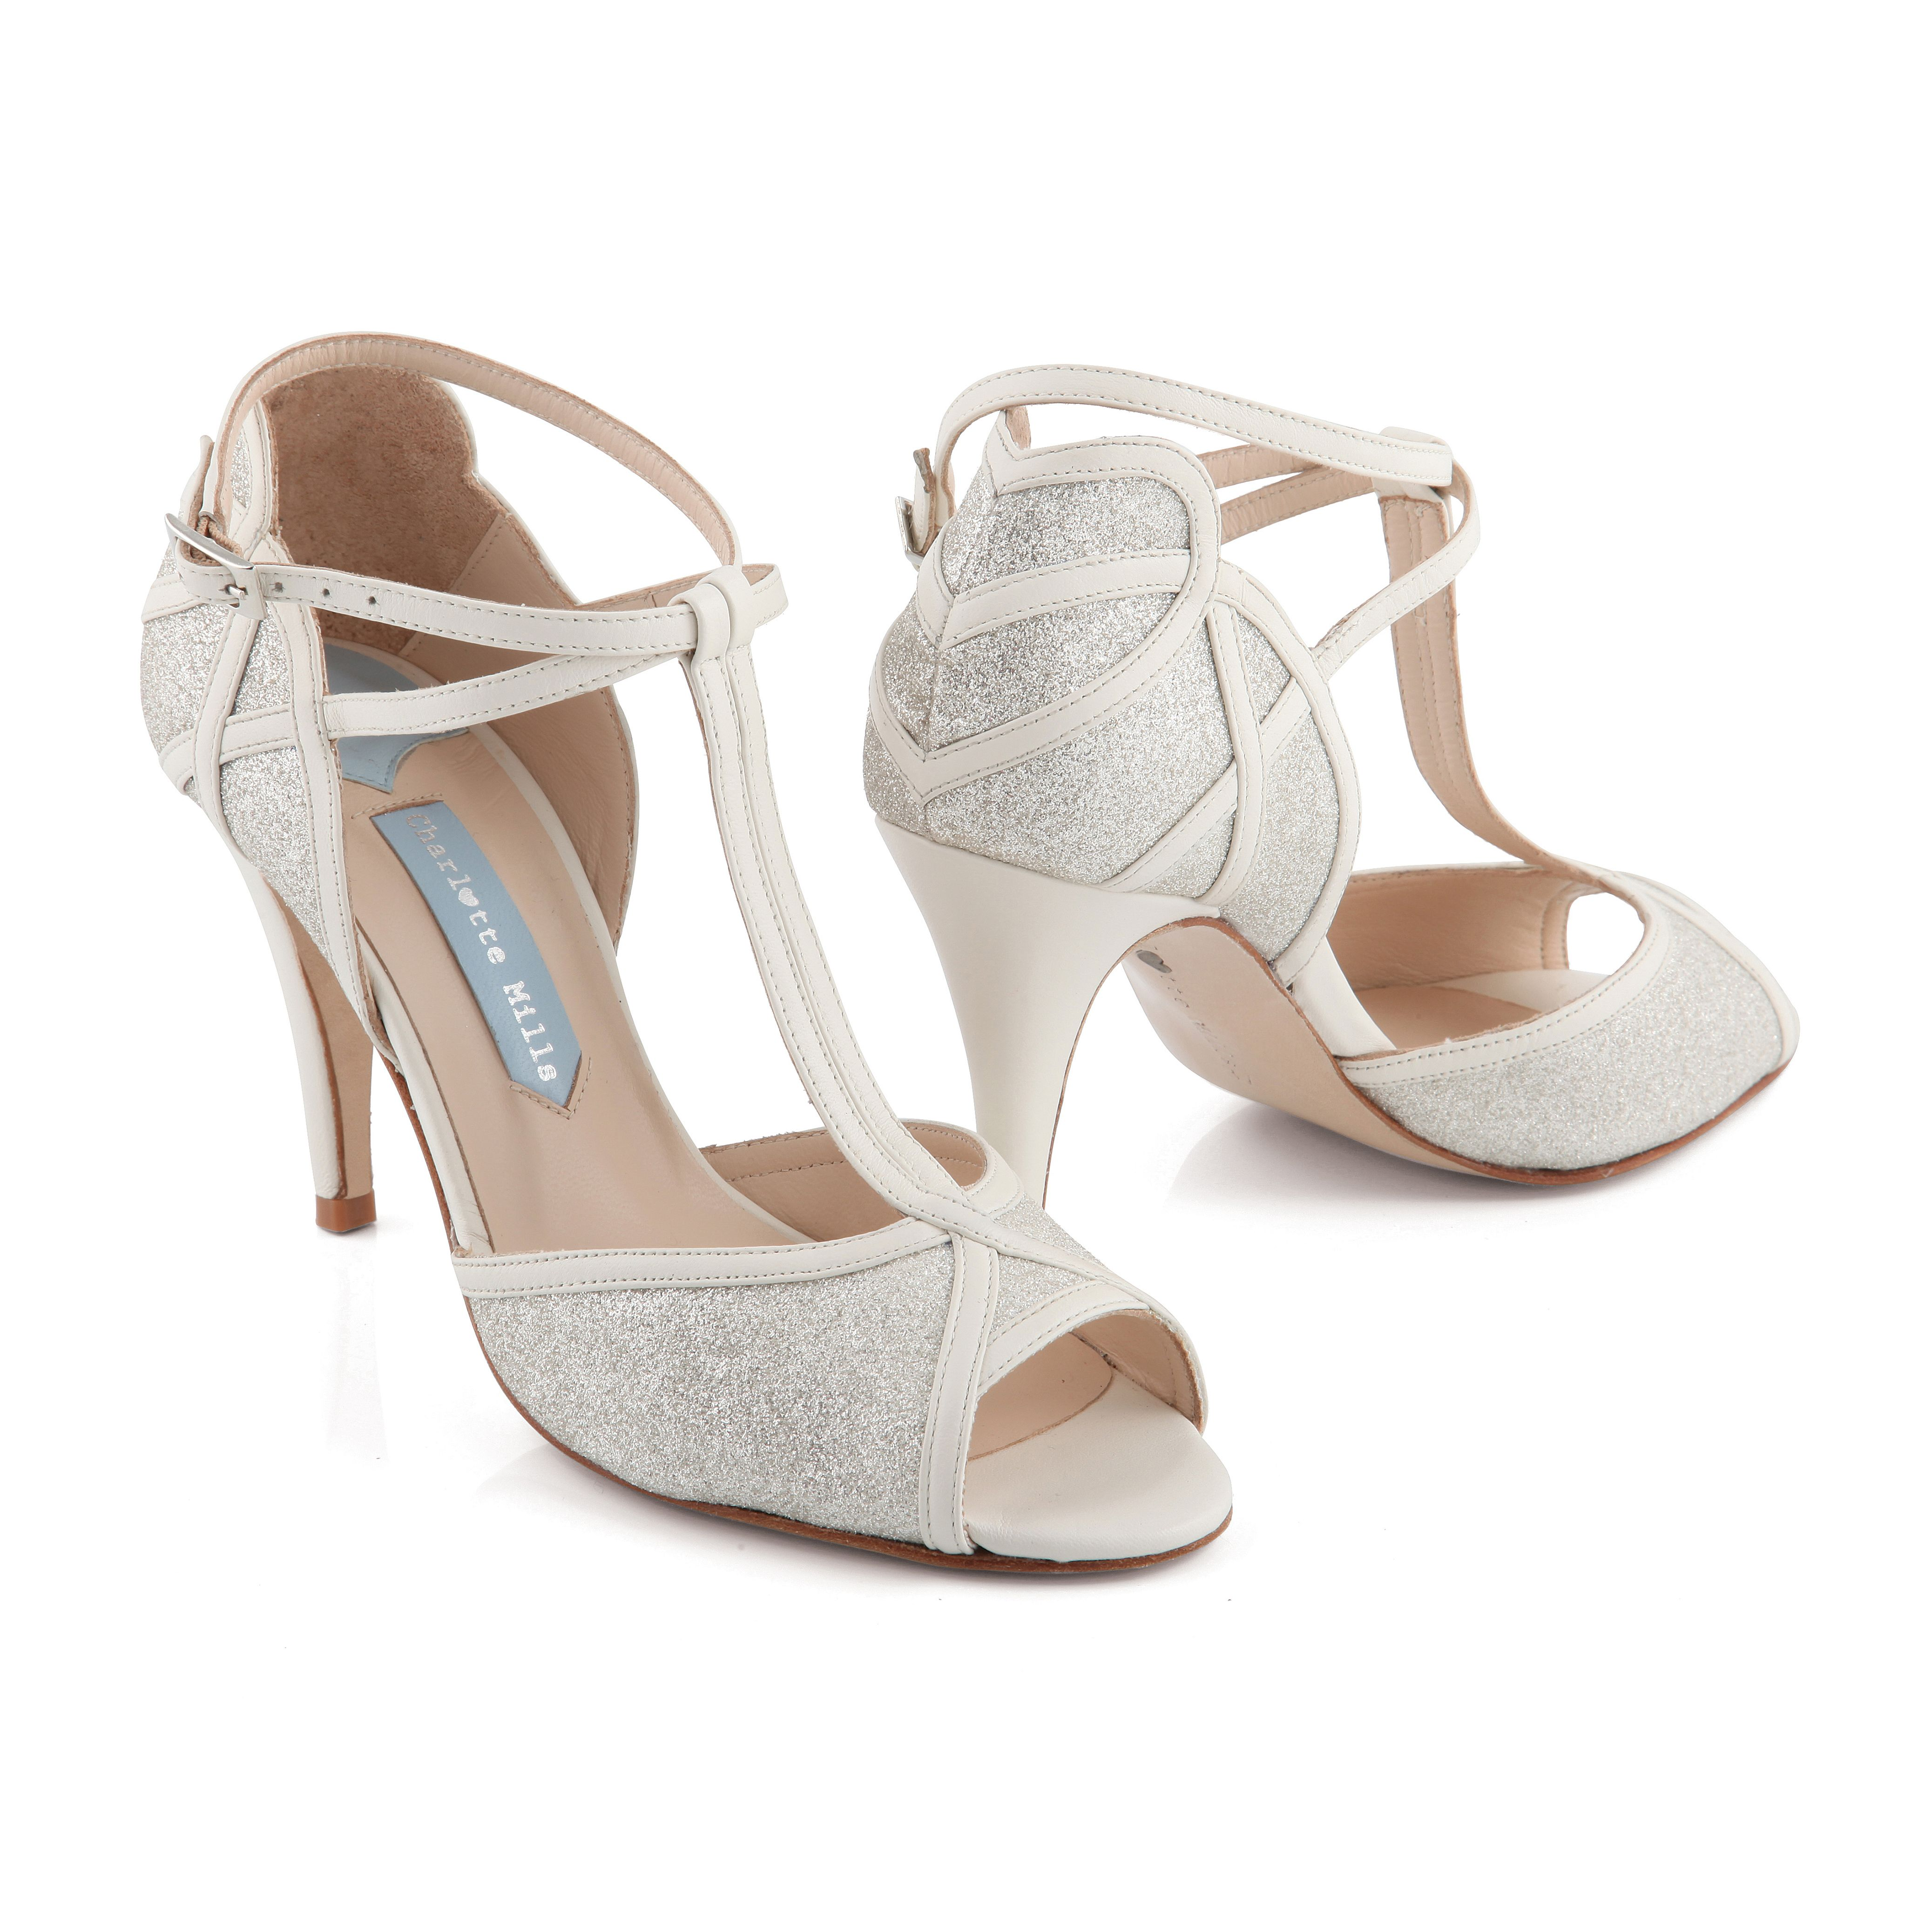 Betty wedding shoes by Charlotte Mills Leather and Glitter T bar